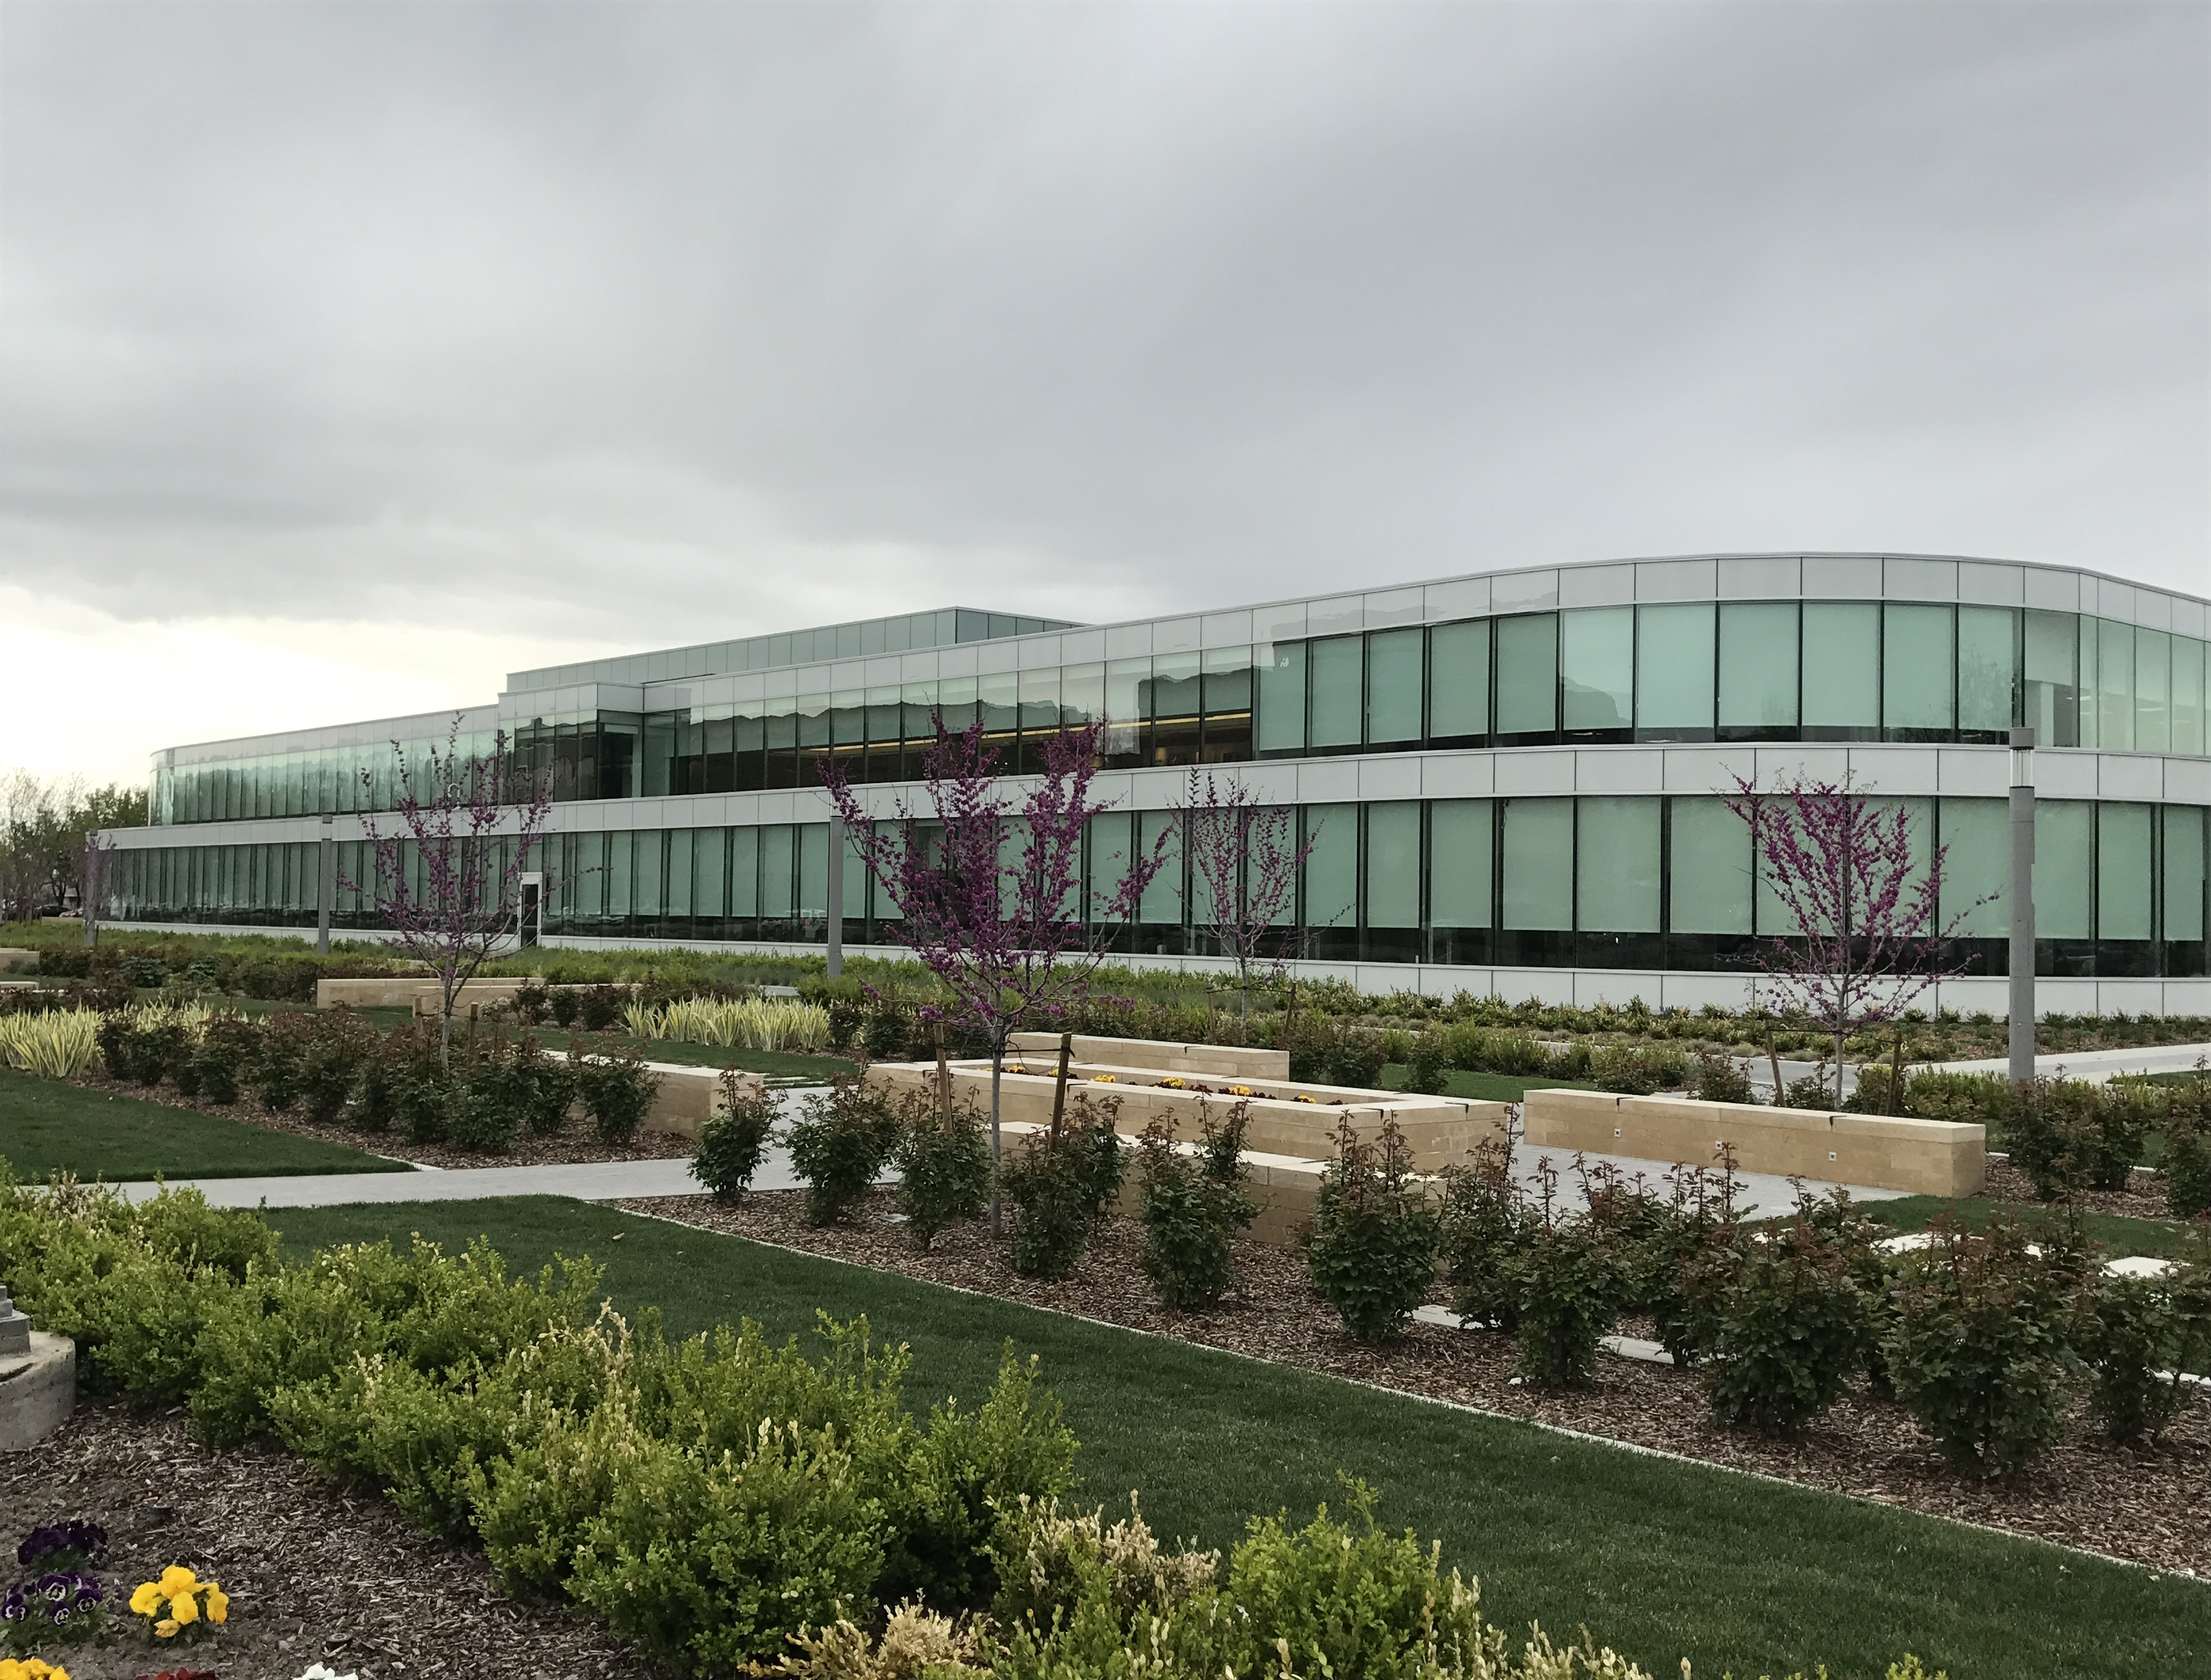 OC Tanner, Salt Lake City, Utah | Glazing Contractor: B&D Glass | Architect: FFKR Architects, SLC | Glass: PPG SB70 Clear